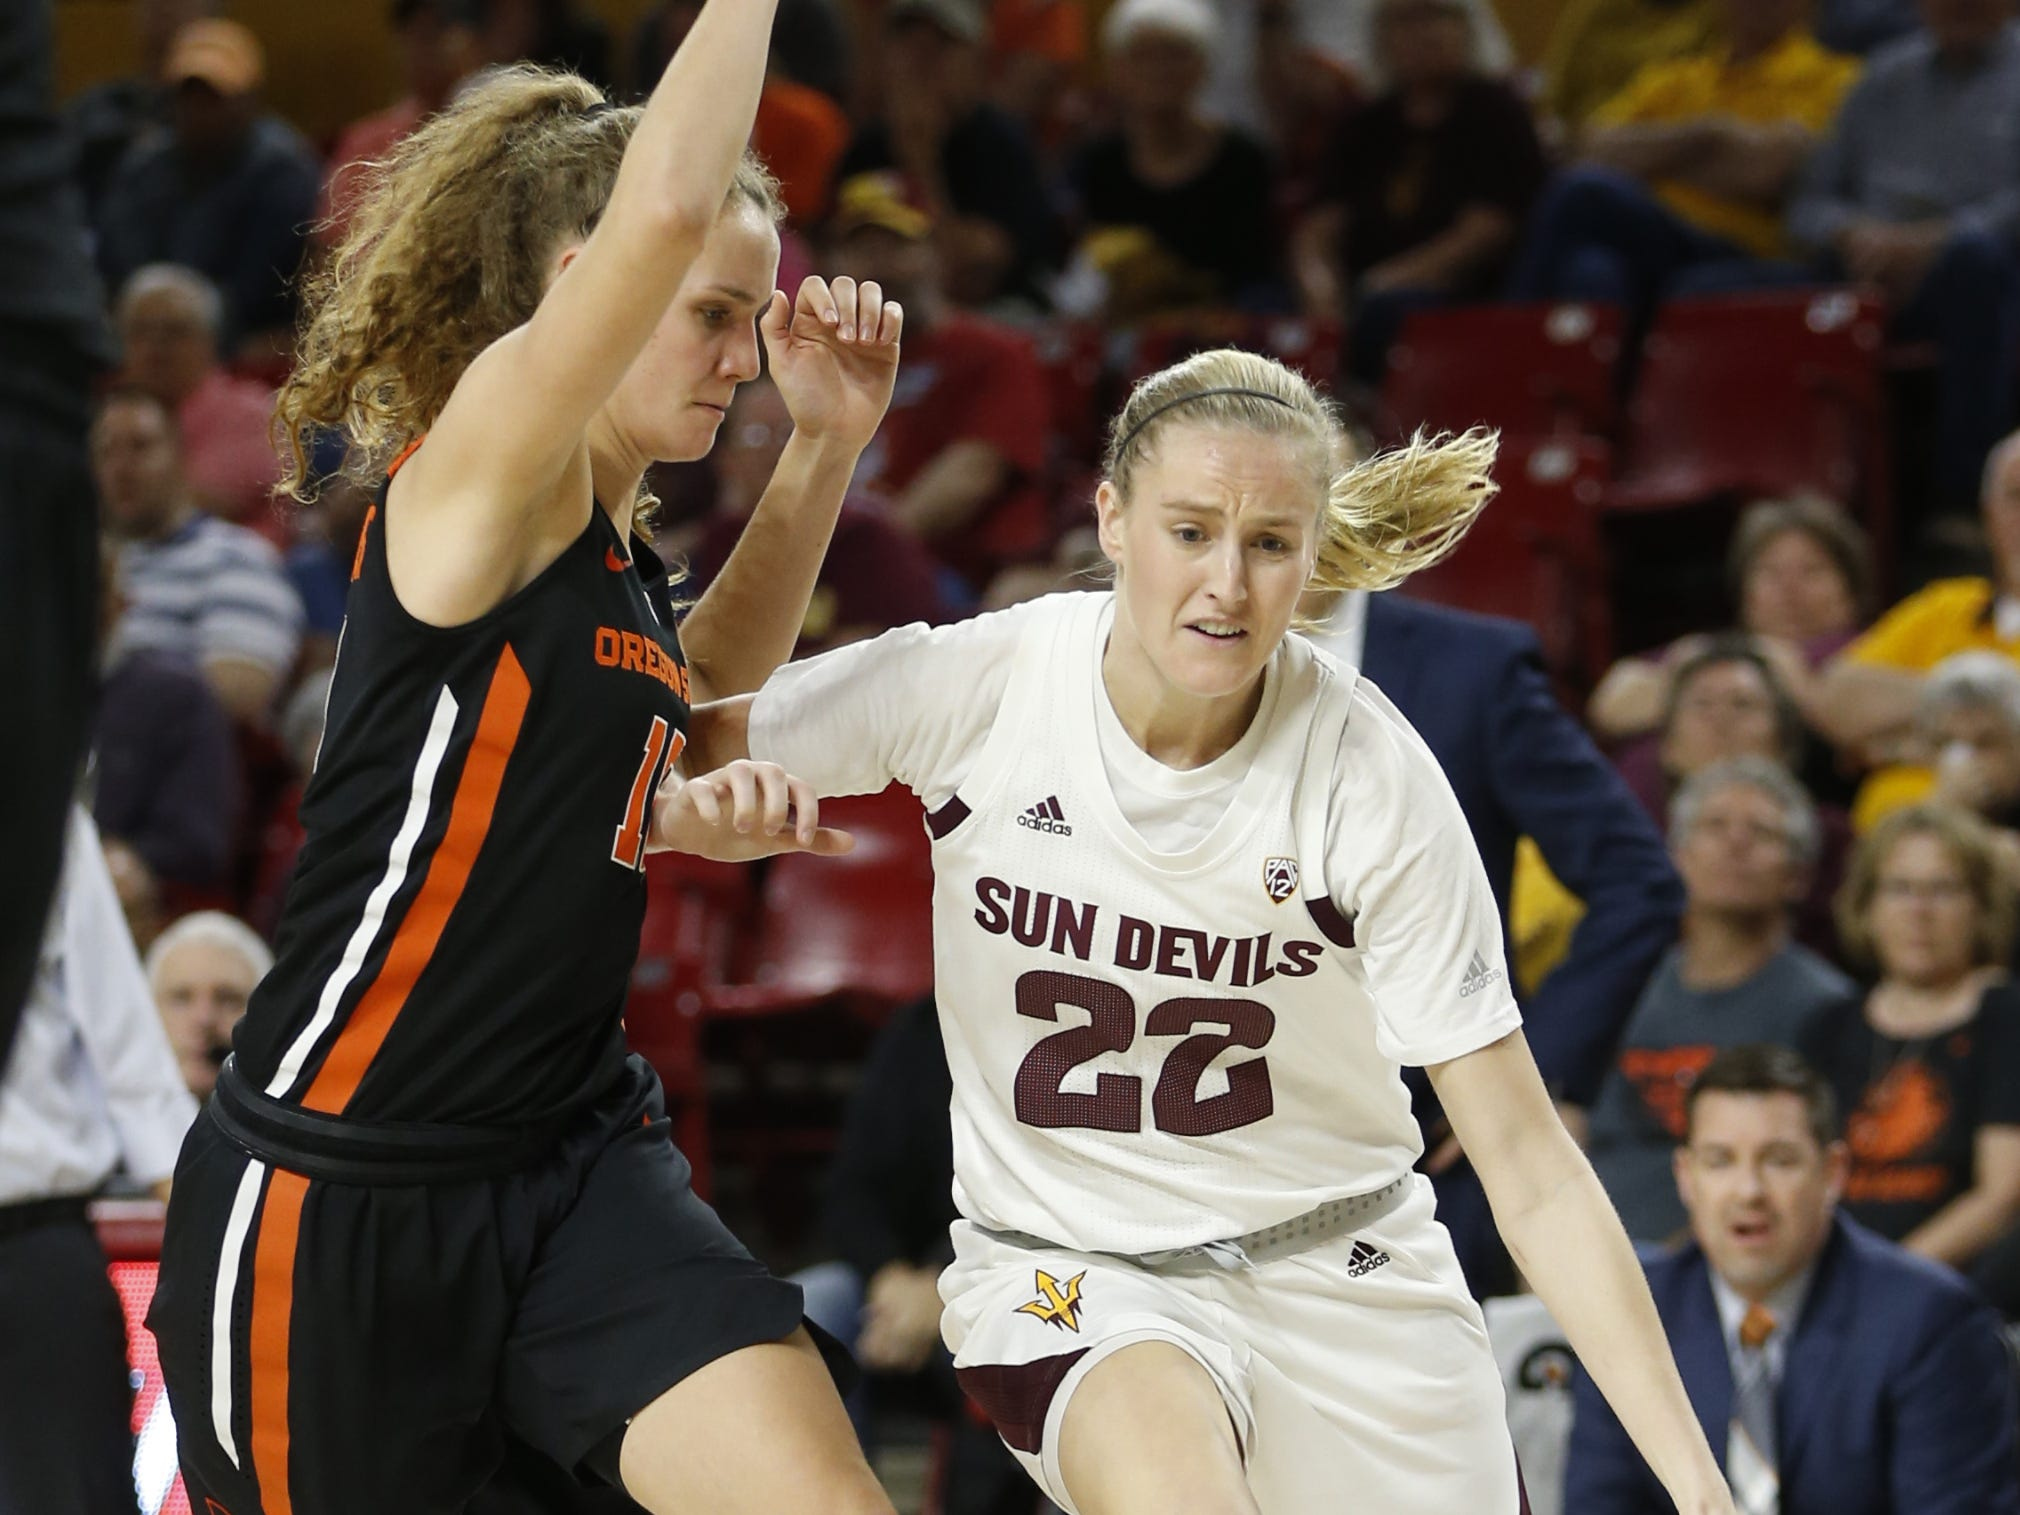 ASU's Courtney Ekmark (22) dribbles against Oregon State's Katie McWilliams (10) during the first half at Wells Fargo Arena in Tempe, Ariz. on March 1, 2019.